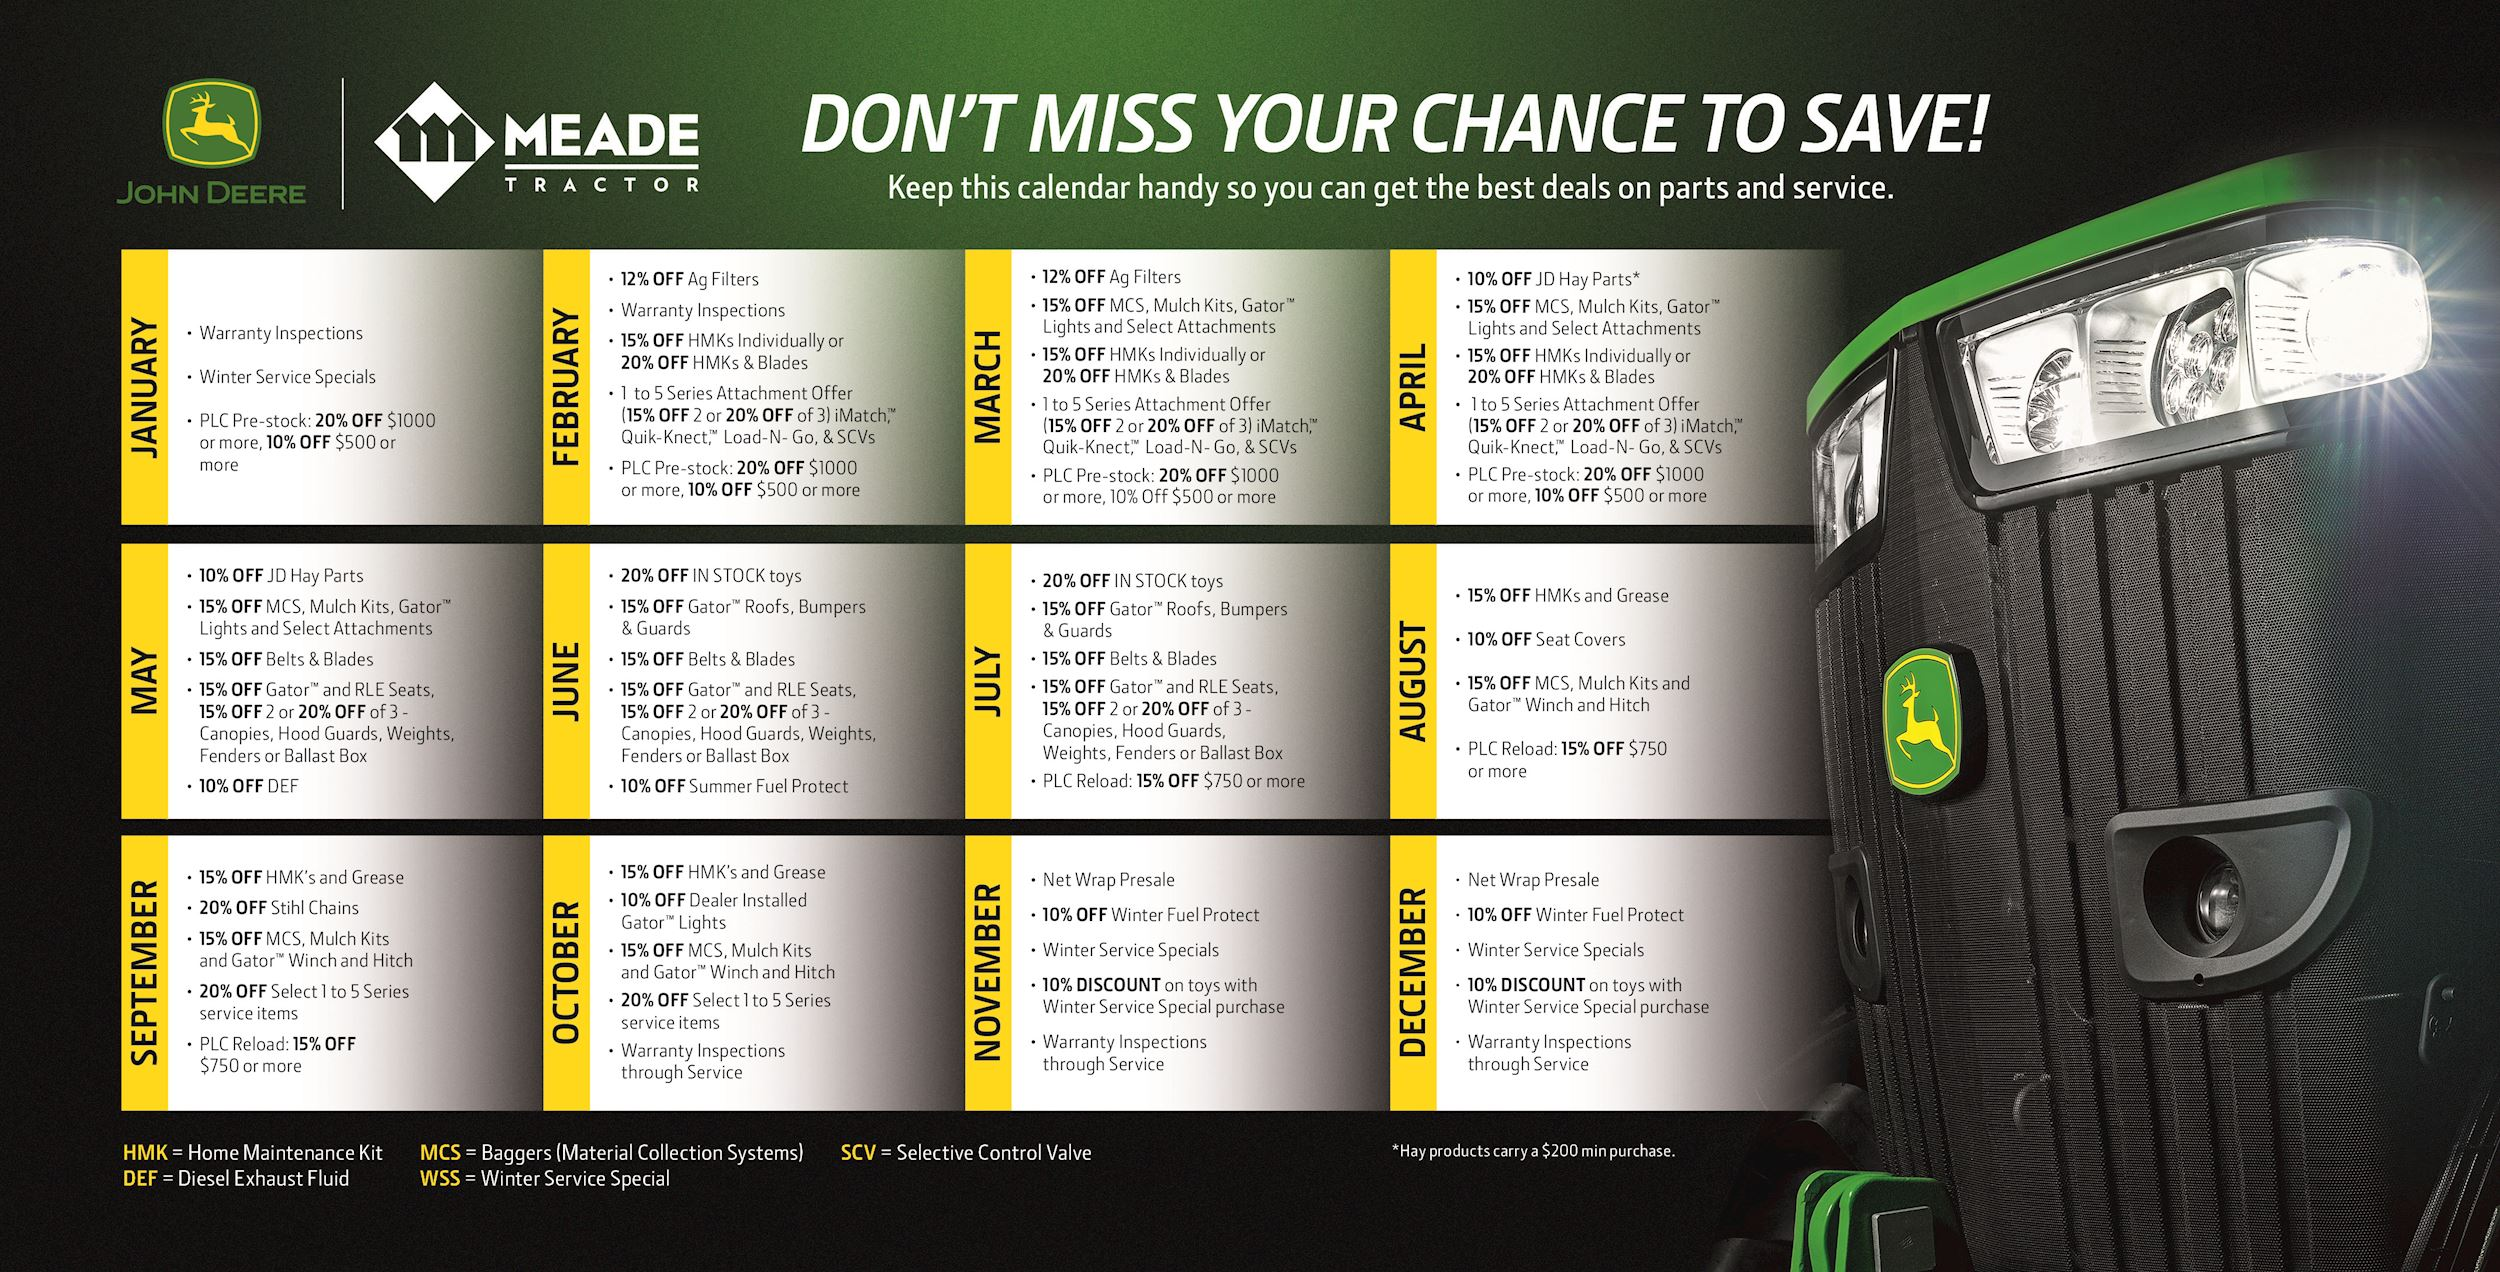 Meade Tractor Parts Promotion Calendar